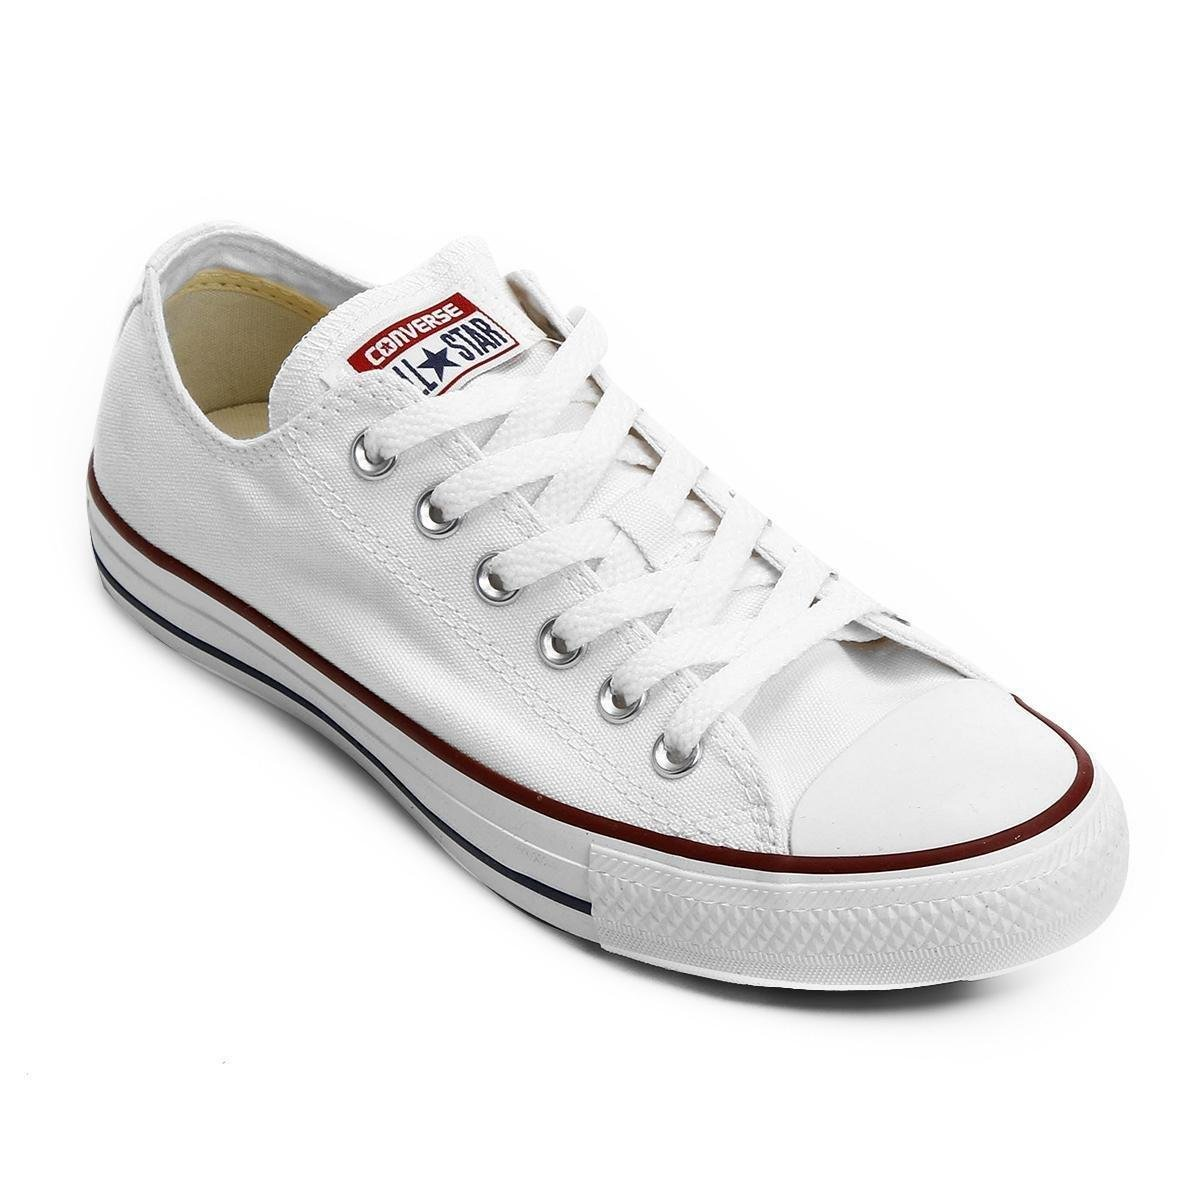 08290dee128 Tênis Converse All Star Ct As Core Ox